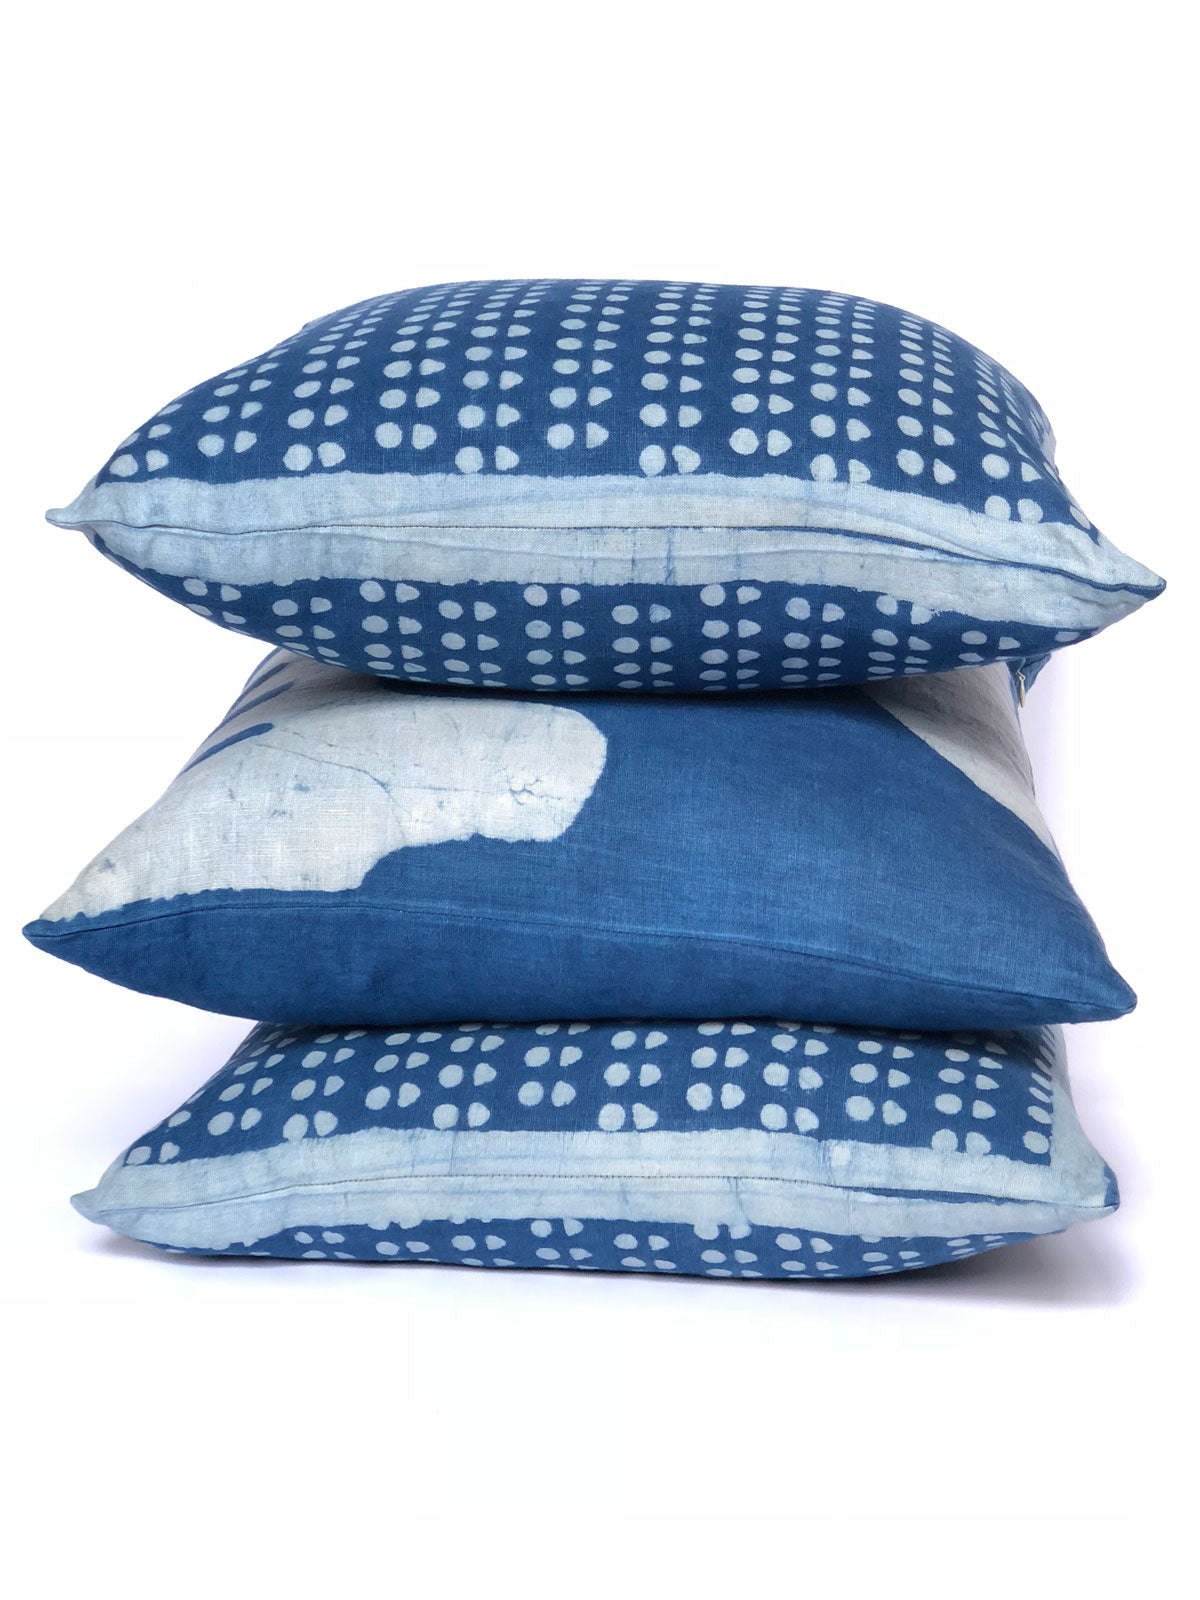 natural indigo dyed navy blue decorative couch throw pillow covers, with geometric abstract polka dot pattern